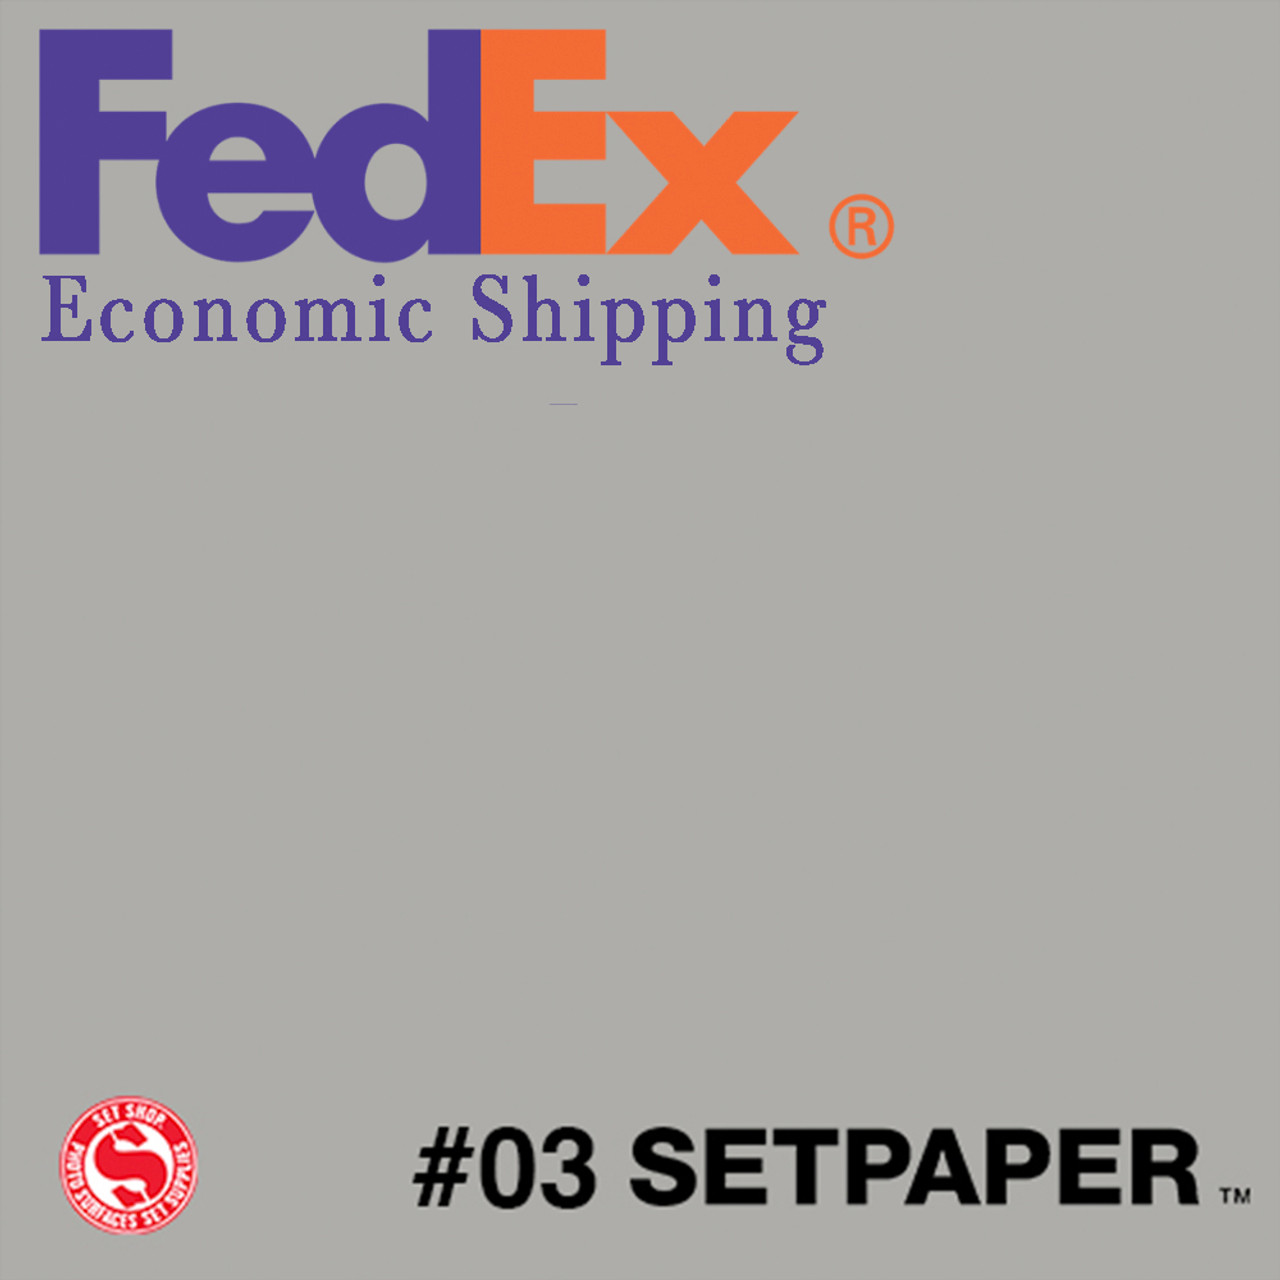 "(ECONOMIC SHIPPING) SETPAPER - SLATE GREY 48"" x 36' (1.2 x 11m)"